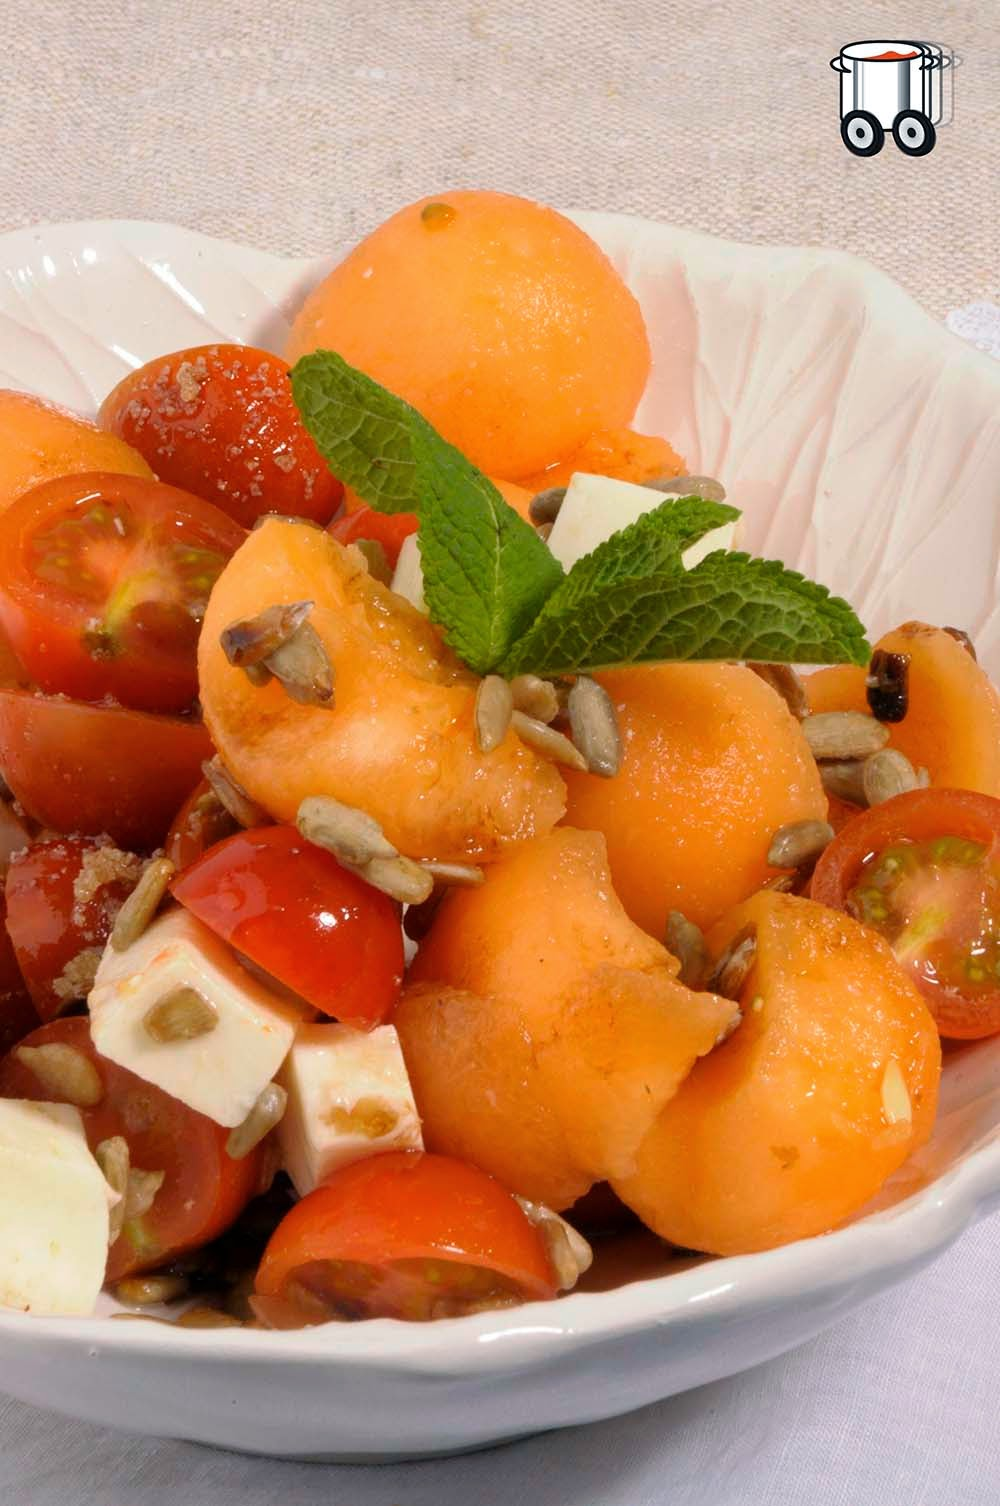 Quick Cheap Tasty - Spring salad with melon, mozzarella and cherry tomatoes